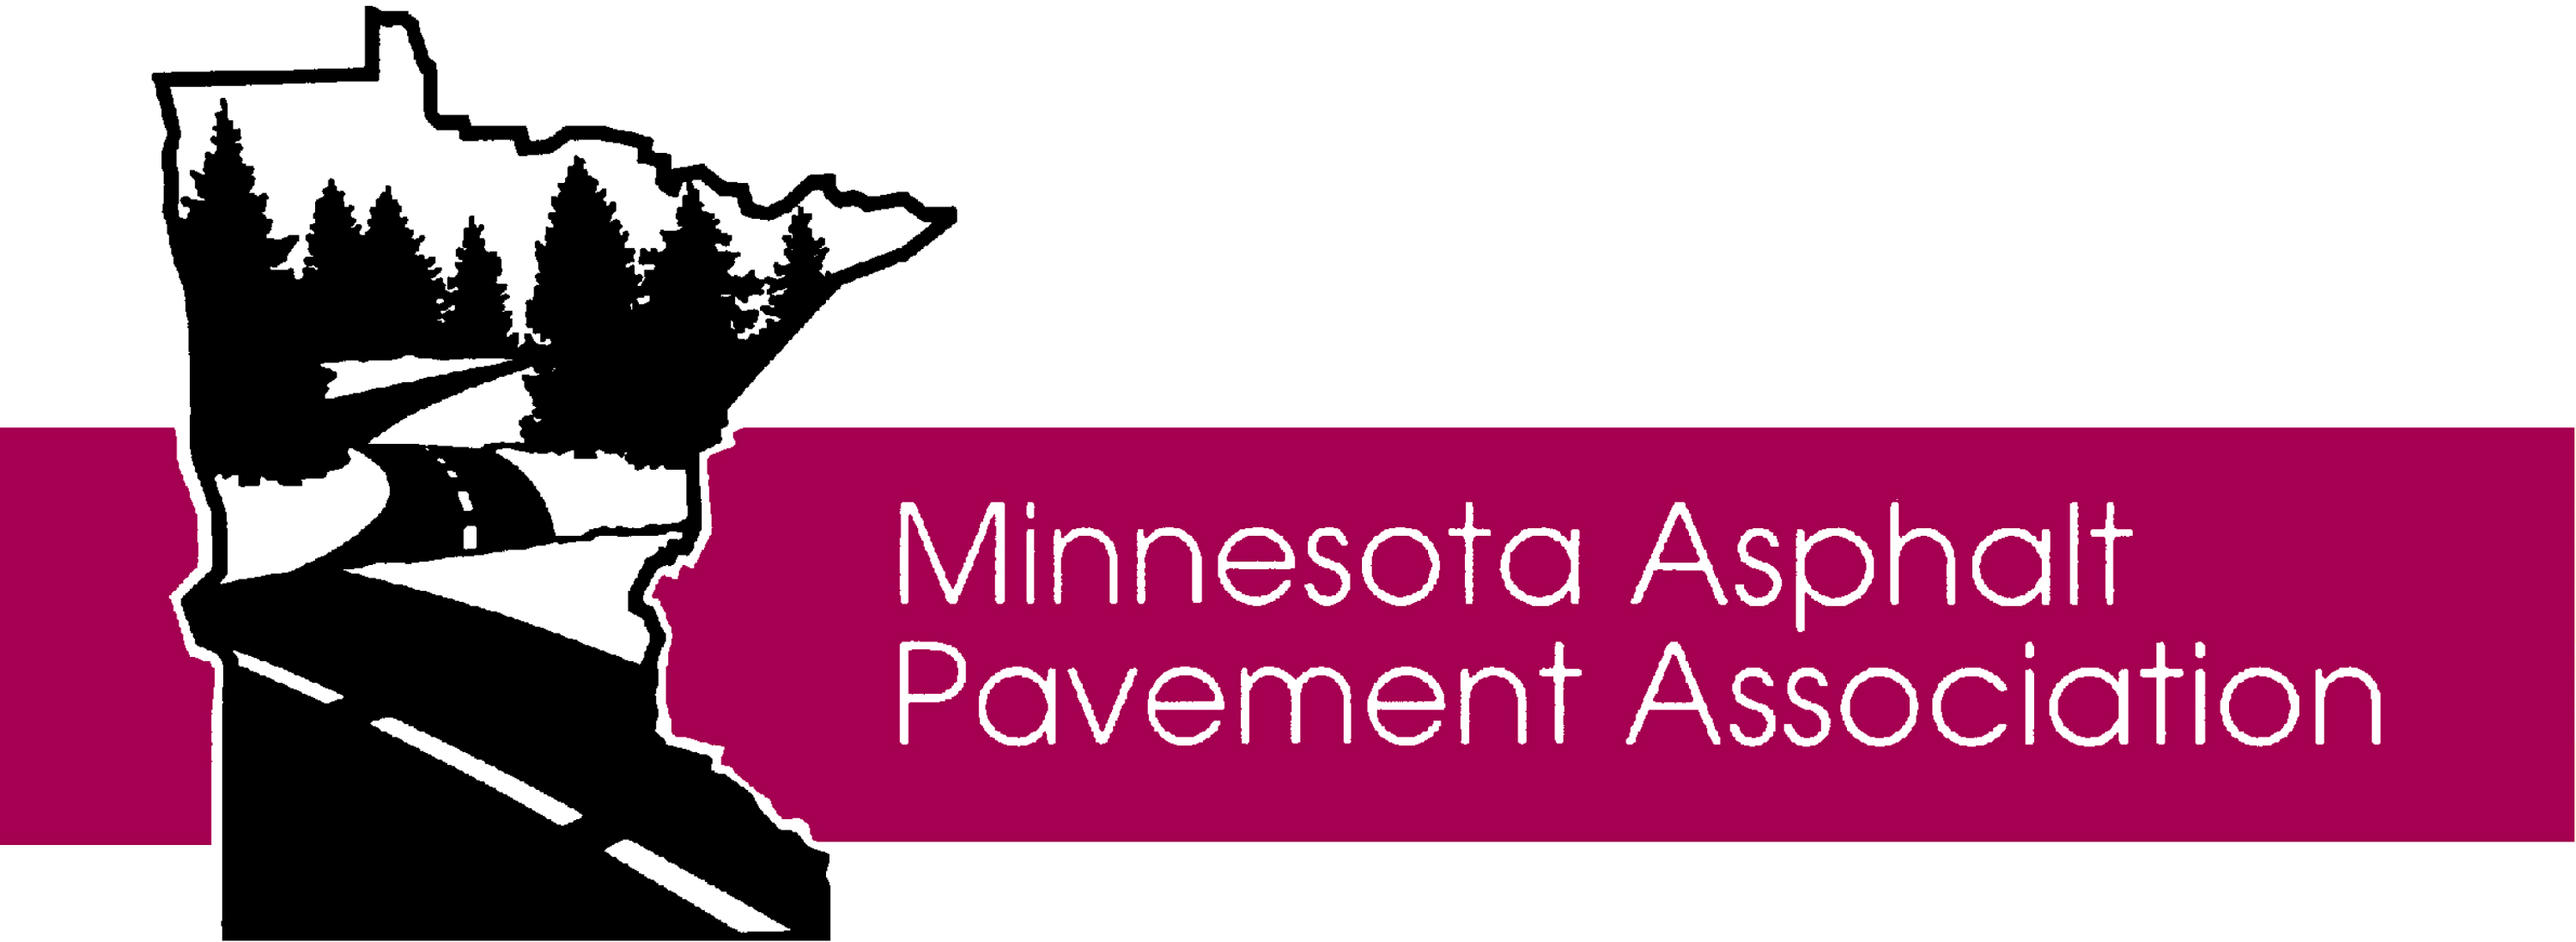 Minnesota Asphalt Pavement Association logo